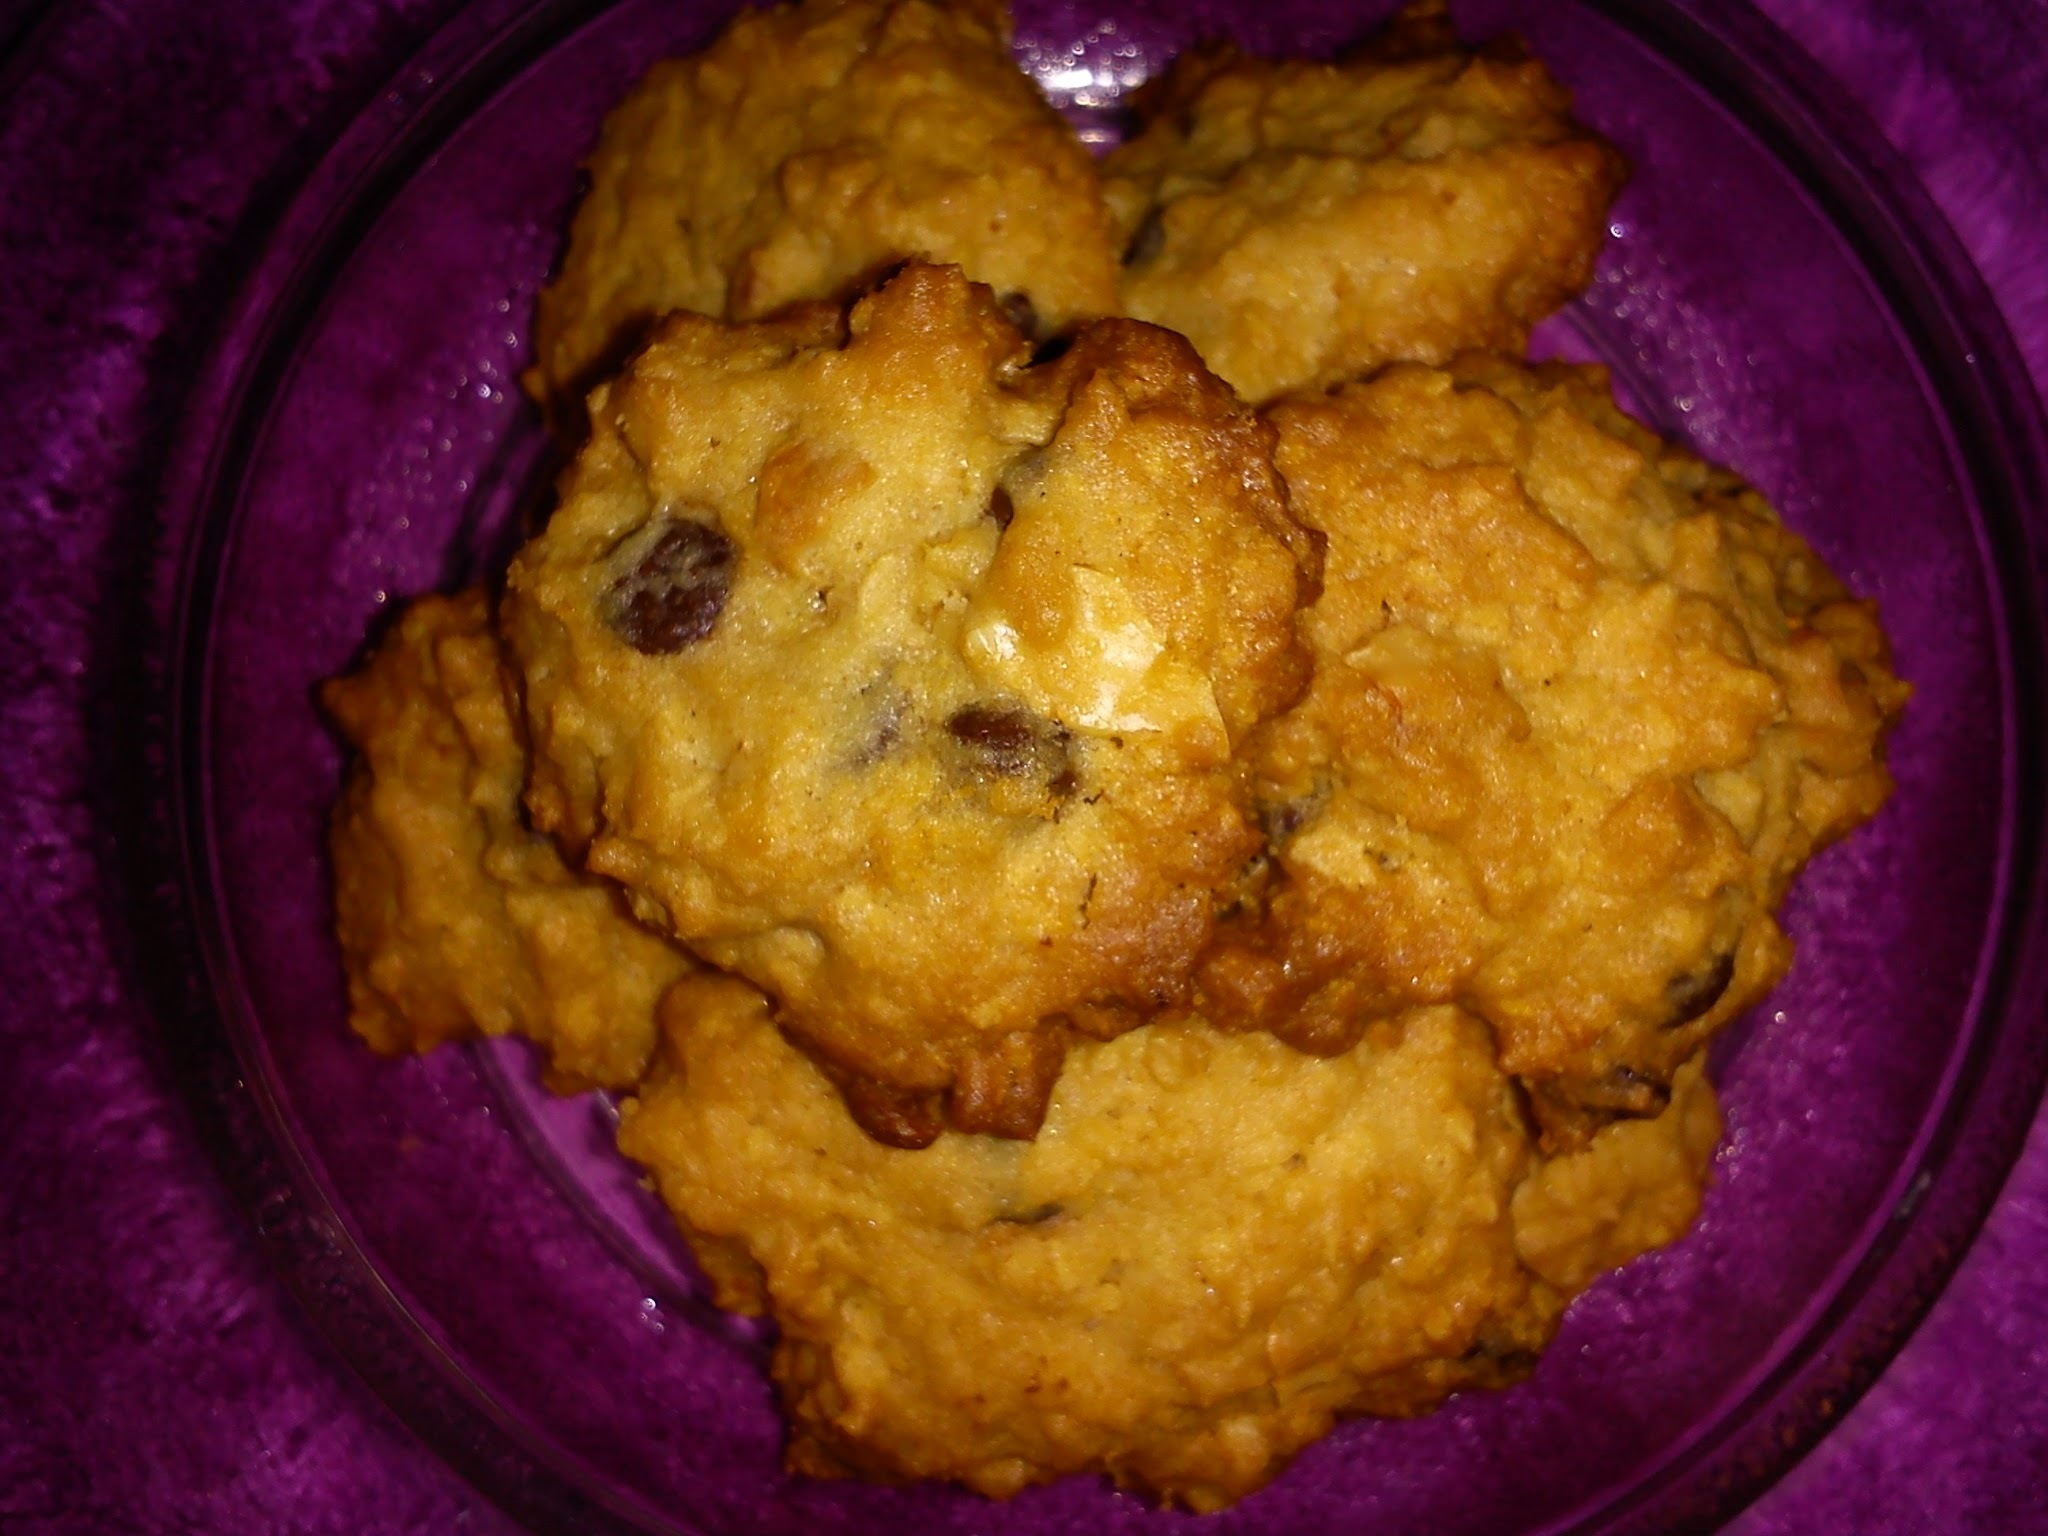 CNY 2016 - NESTUM CHOCOLATE CHIP COOKIES